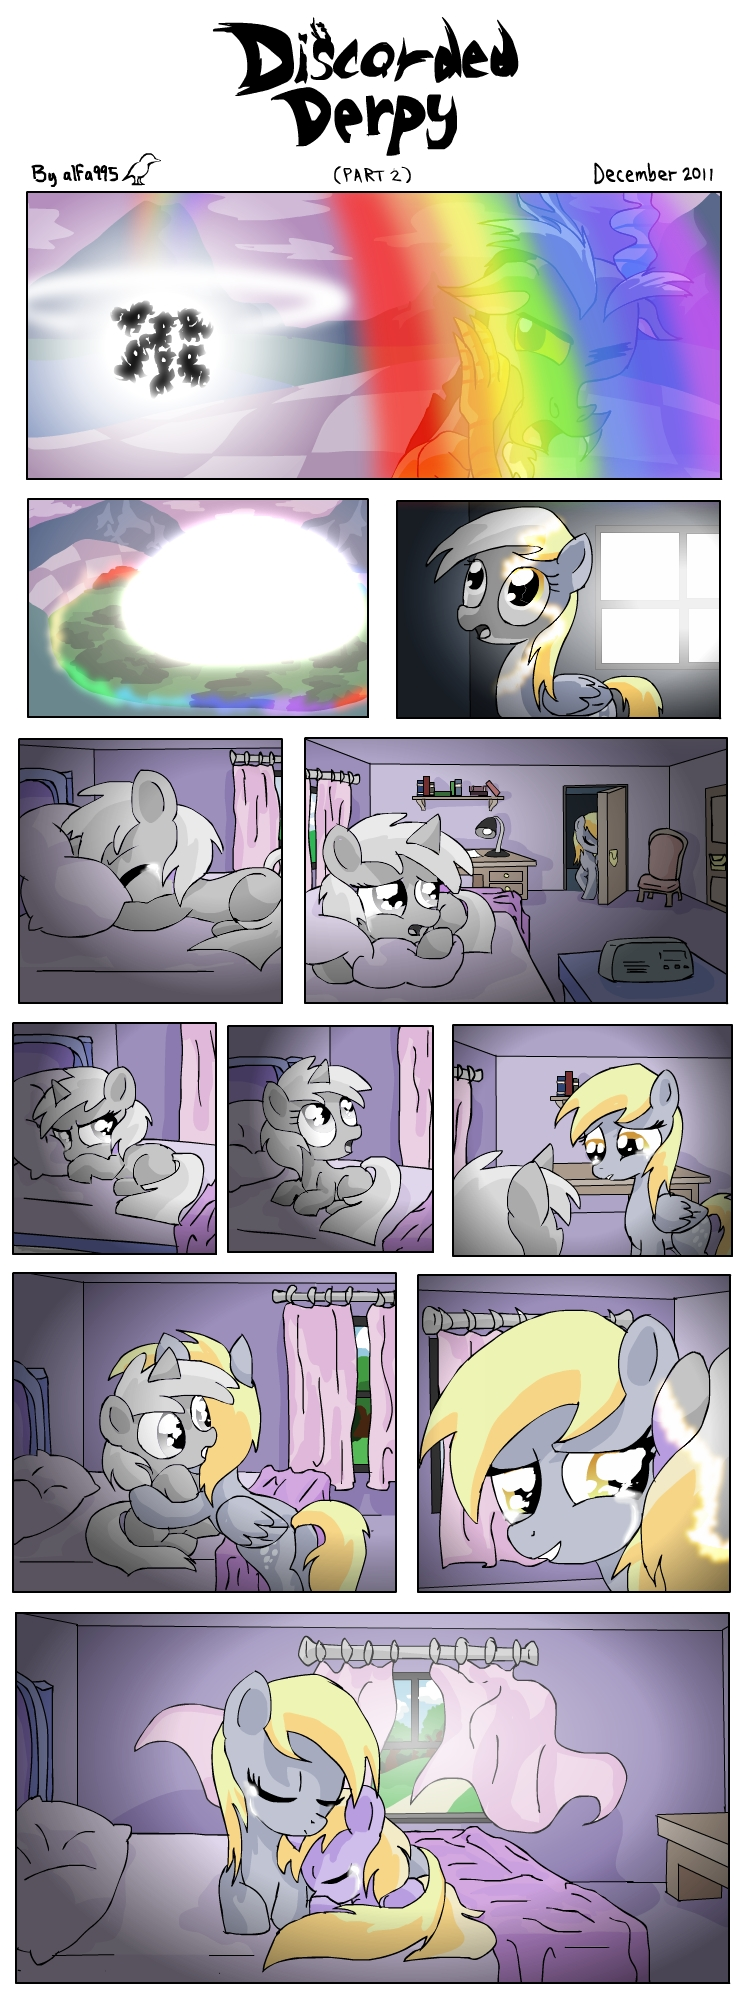 Discorded Derpy - part 2 by alfa995